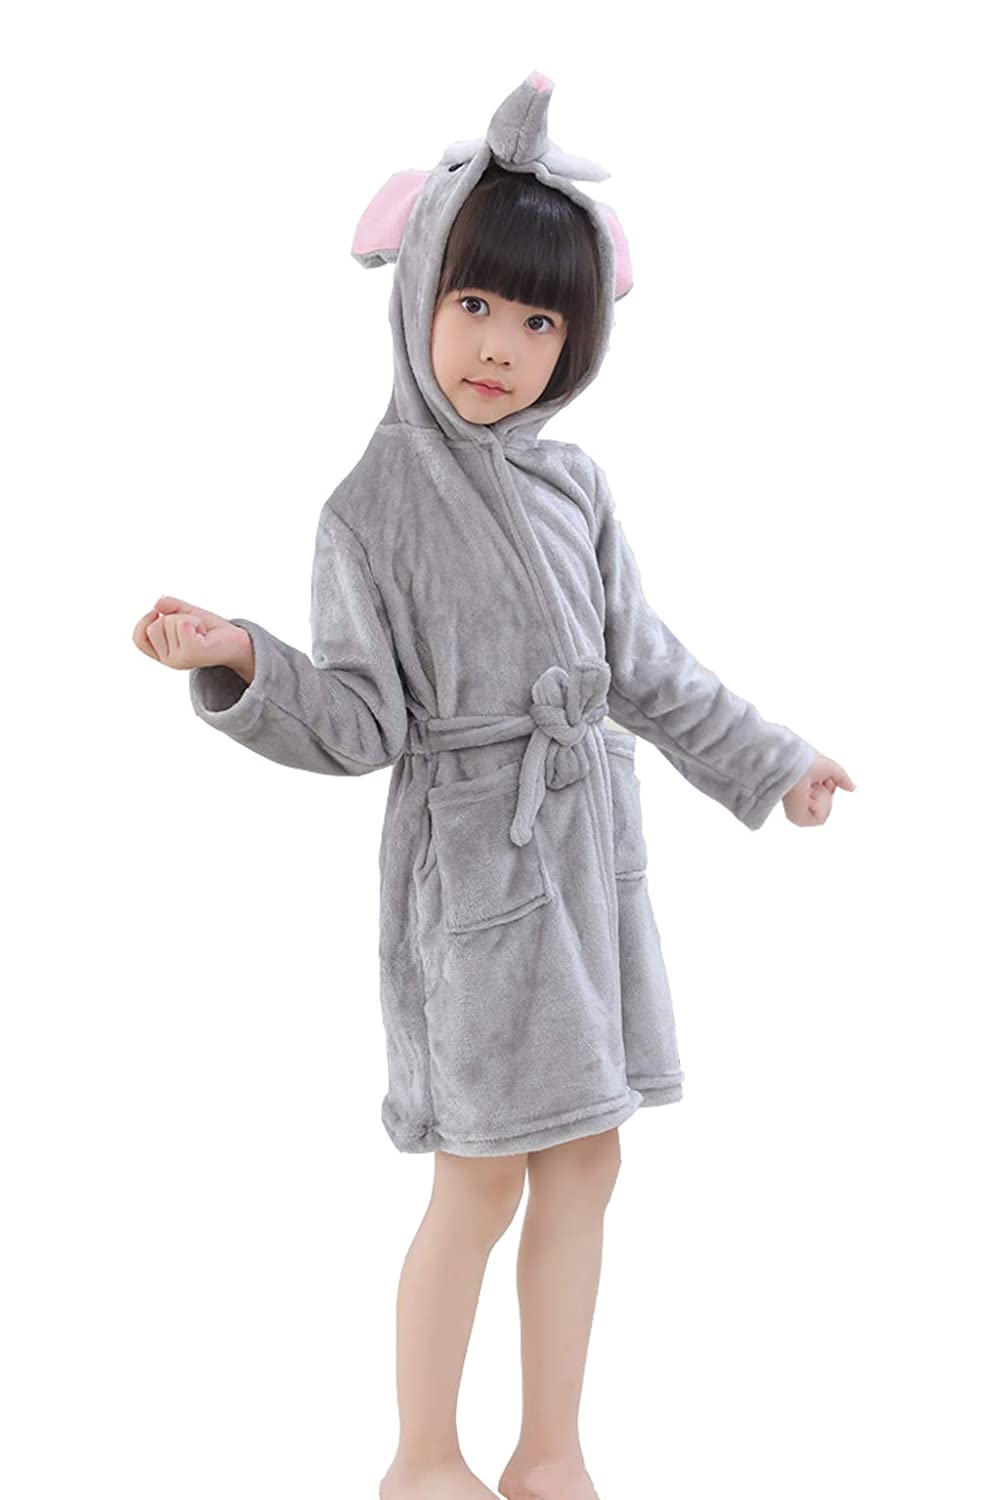 RGTOPONE Kids Soft Bathrobe Animal Fleece Sleepwear Comfortable Loungewear